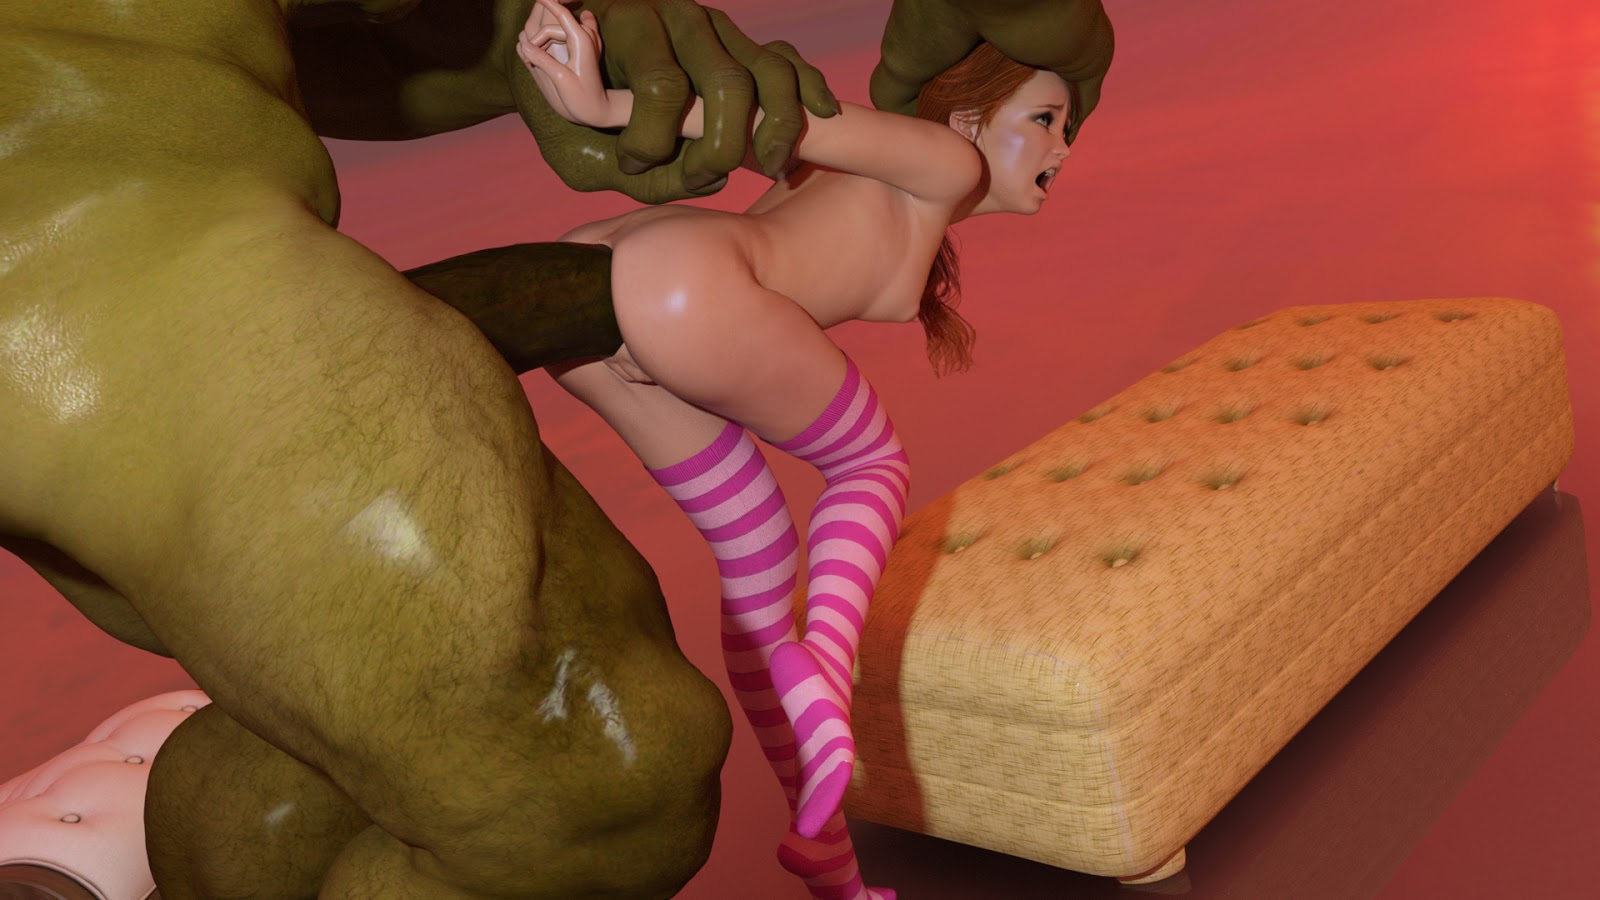 Monster 3d xxx art work pics naked picture